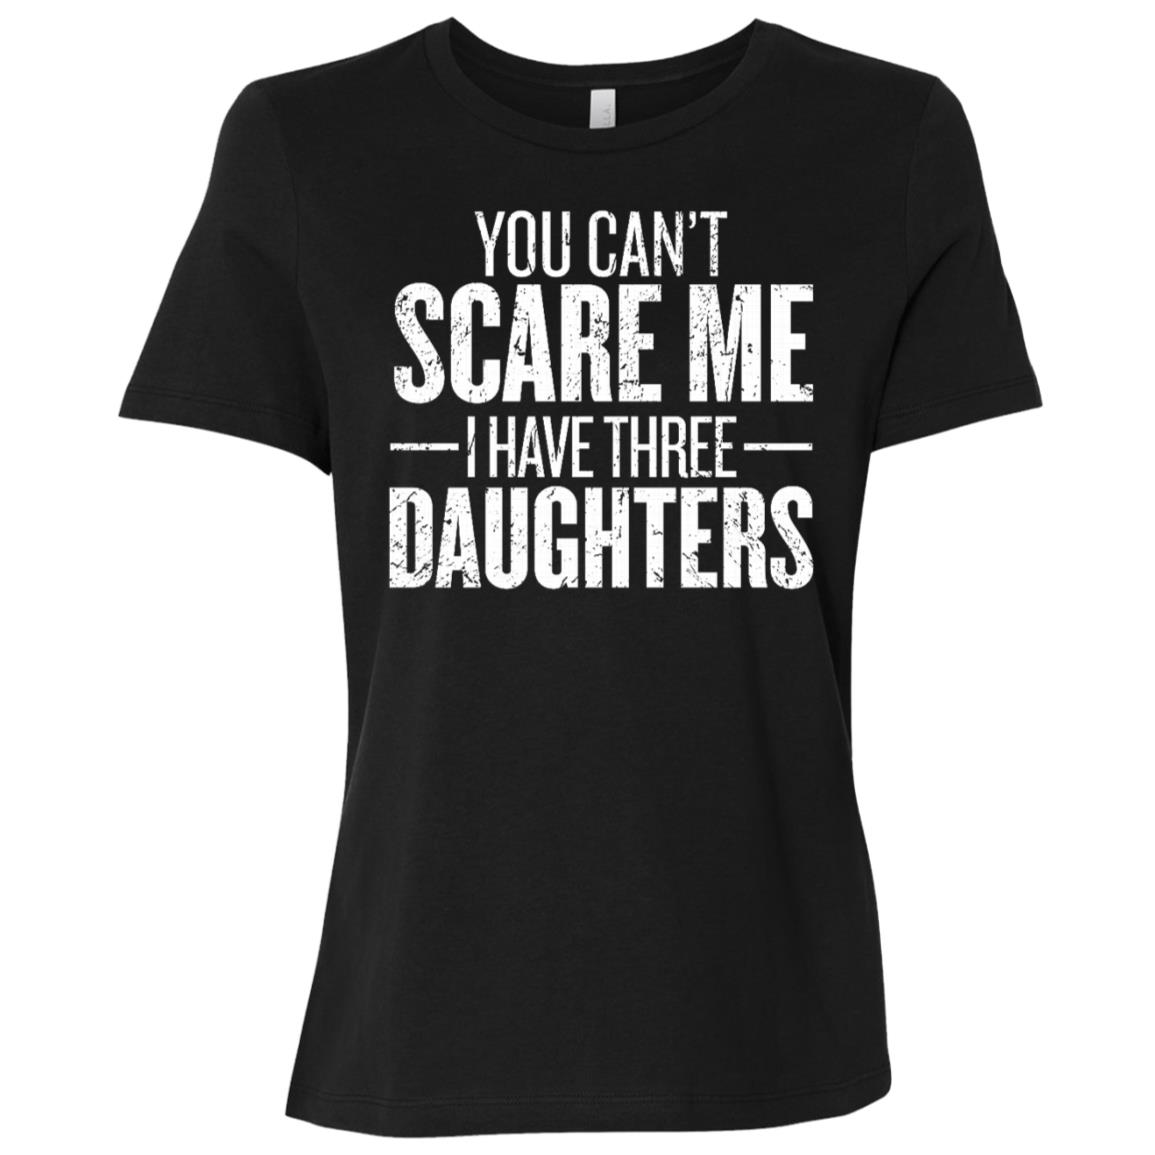 Can't Scare Me I Have Three Daughters Gift Sleeves Women Short Sleeve T-Shirt